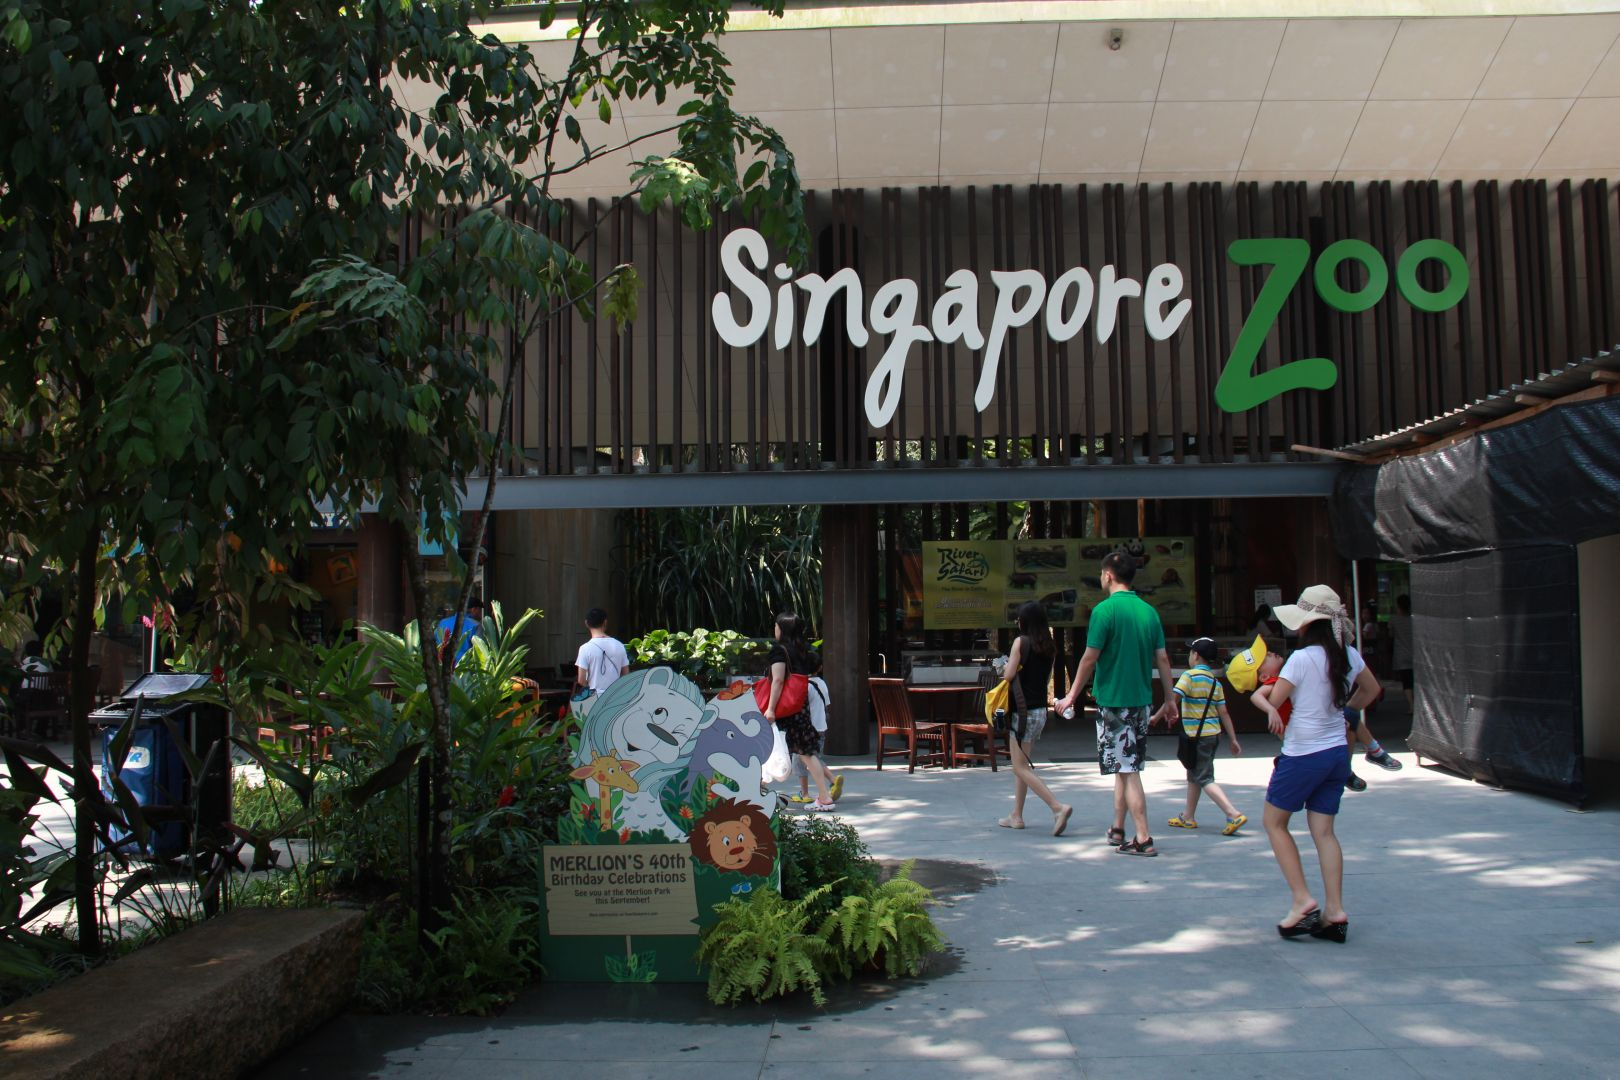 singapore zoo - things to do in Singapore